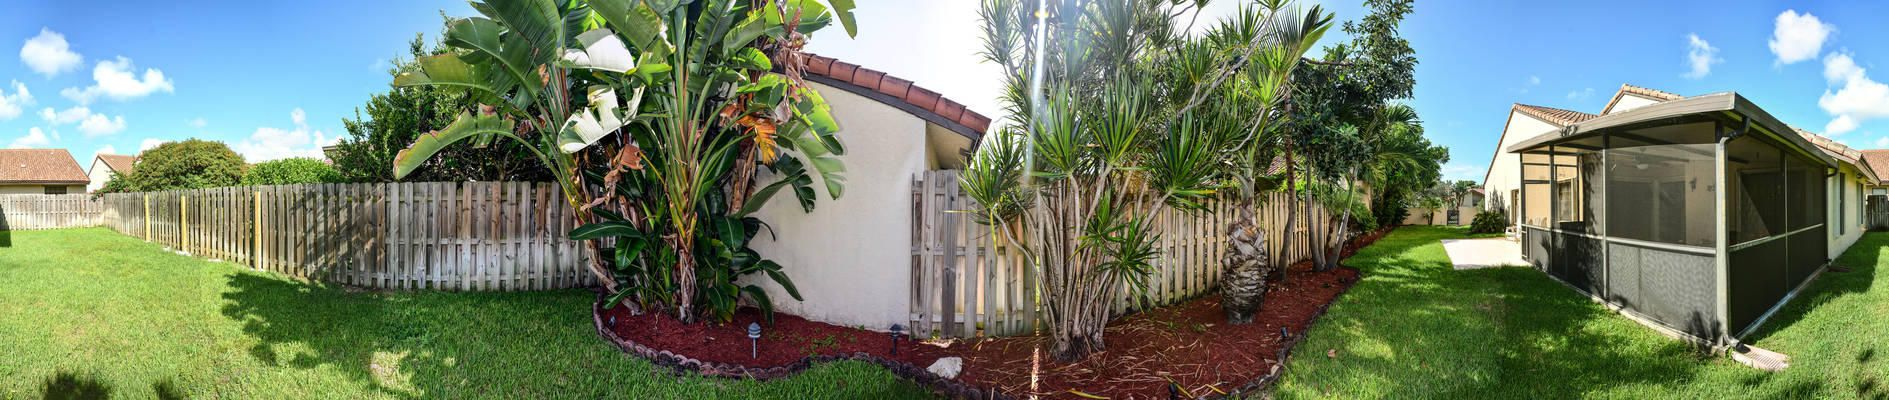 2155 NW 12th St Delray Beach-small-034-R